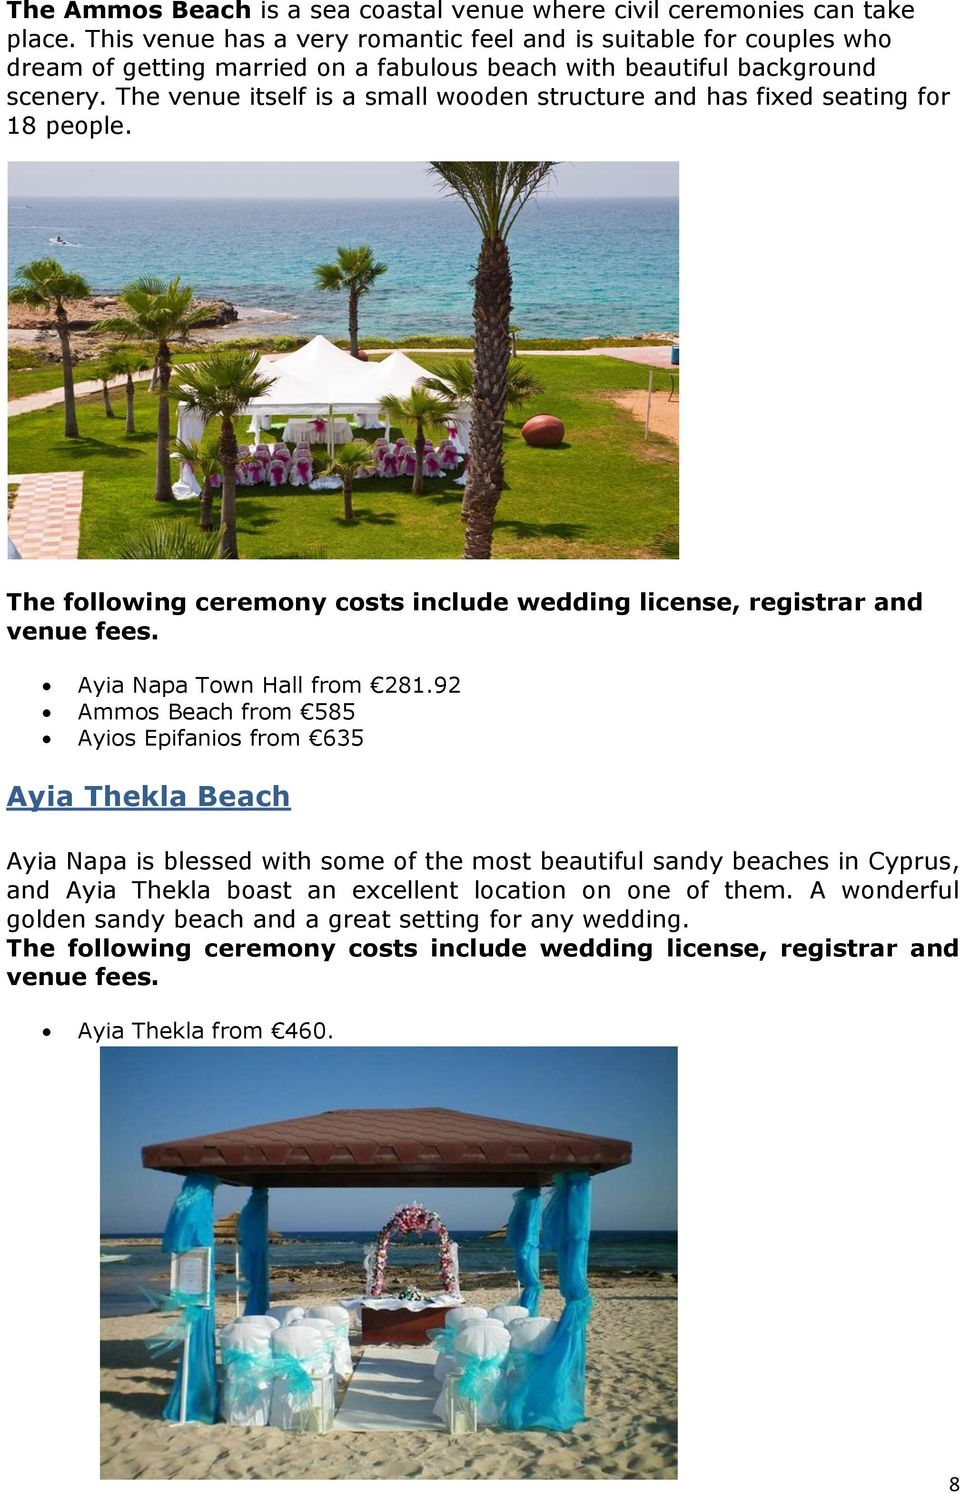 The venue itself is a small wooden structure and has fixed seating for 18 people. The following ceremony costs include wedding license, registrar and venue fees. Ayia Napa Town Hall from 281.